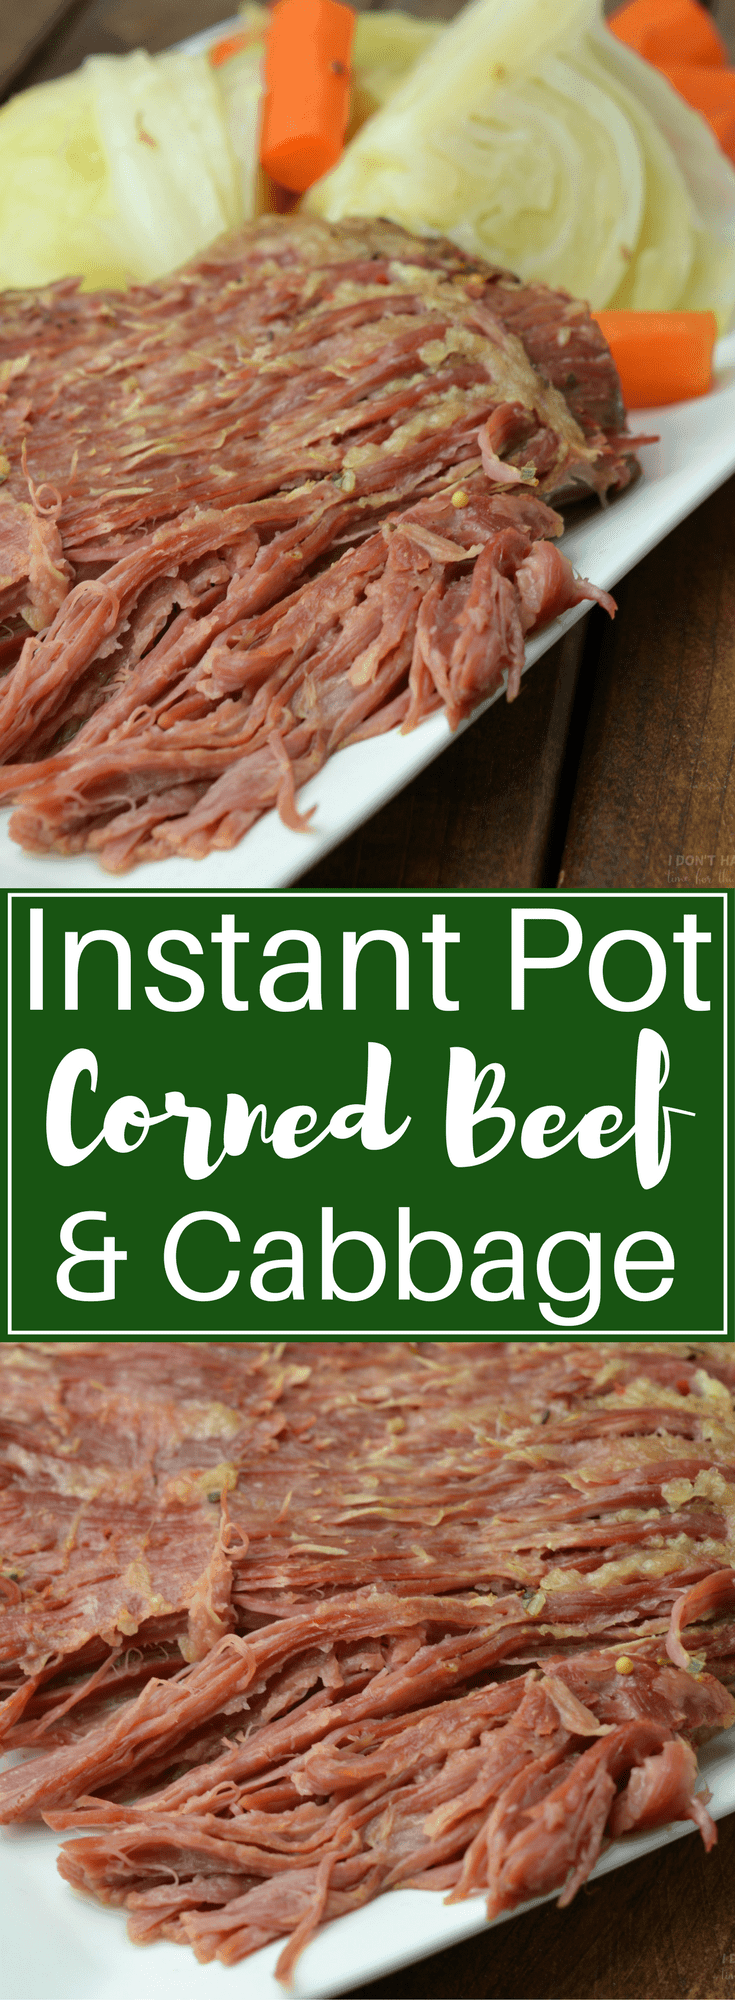 Instant Pot Corned Beef And Cabbage Instant Pot Recipes